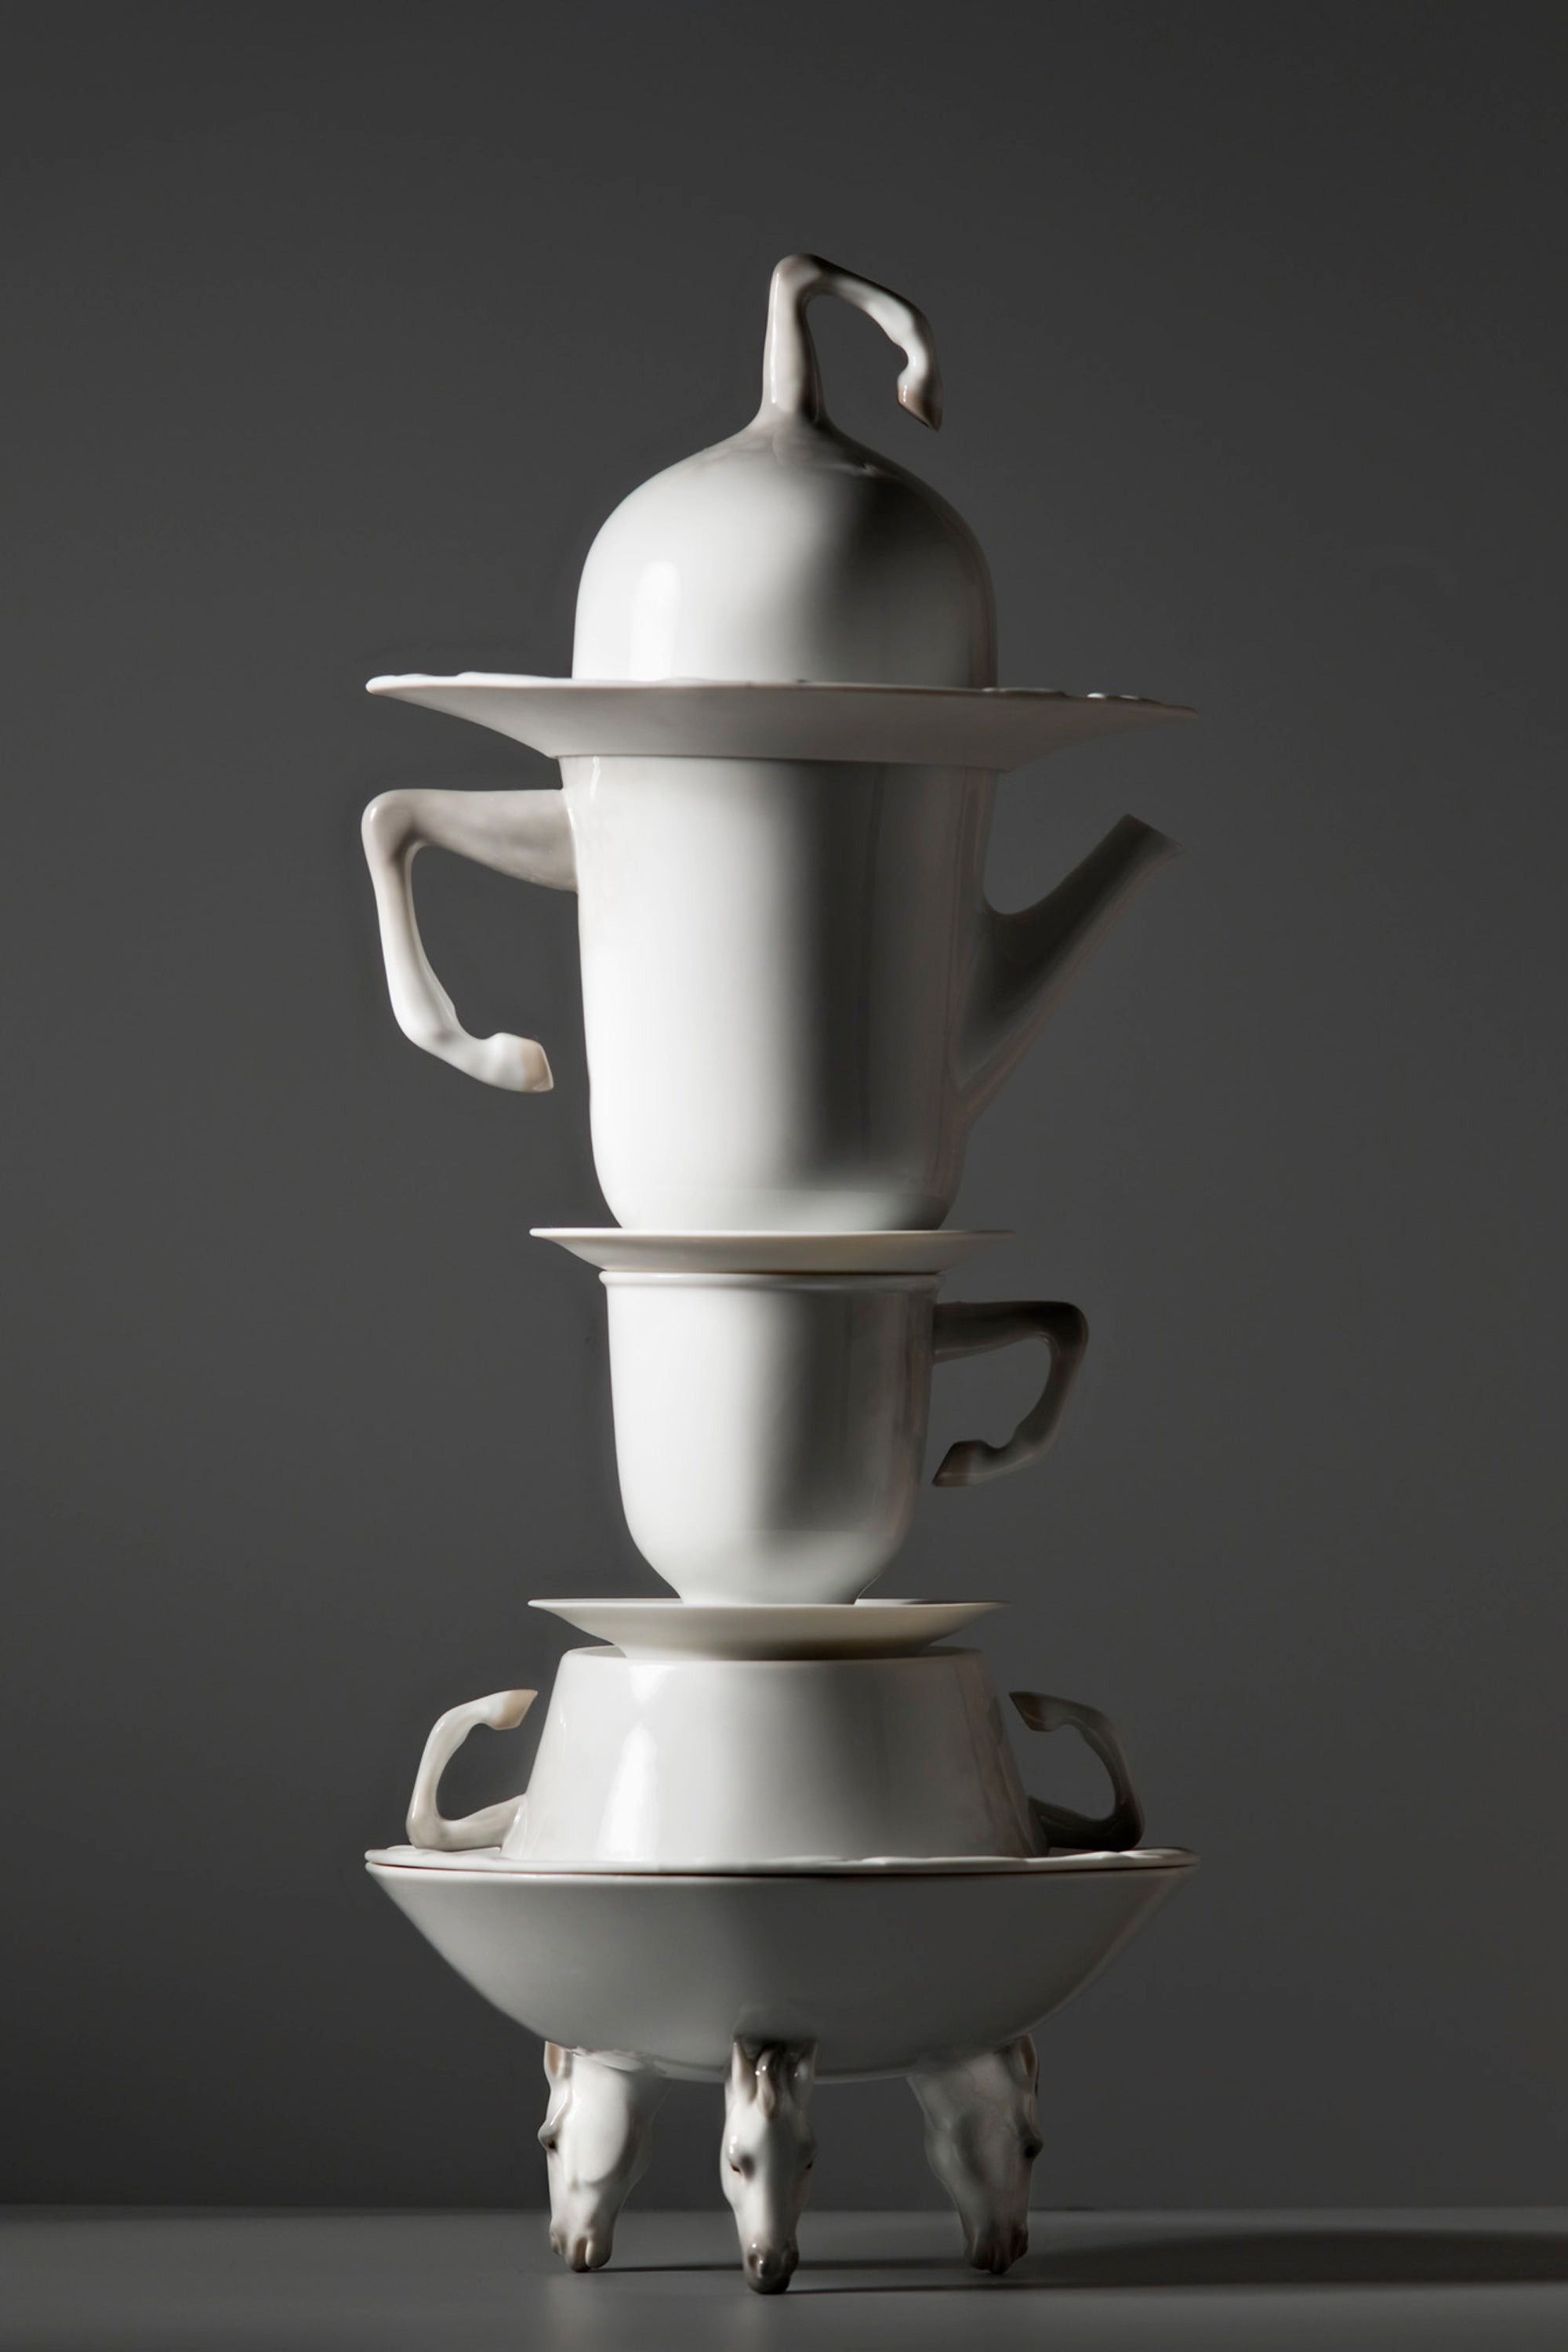 Lladro Equus Porcelain Tableware Collection Design by Bodo Sperlein Agency